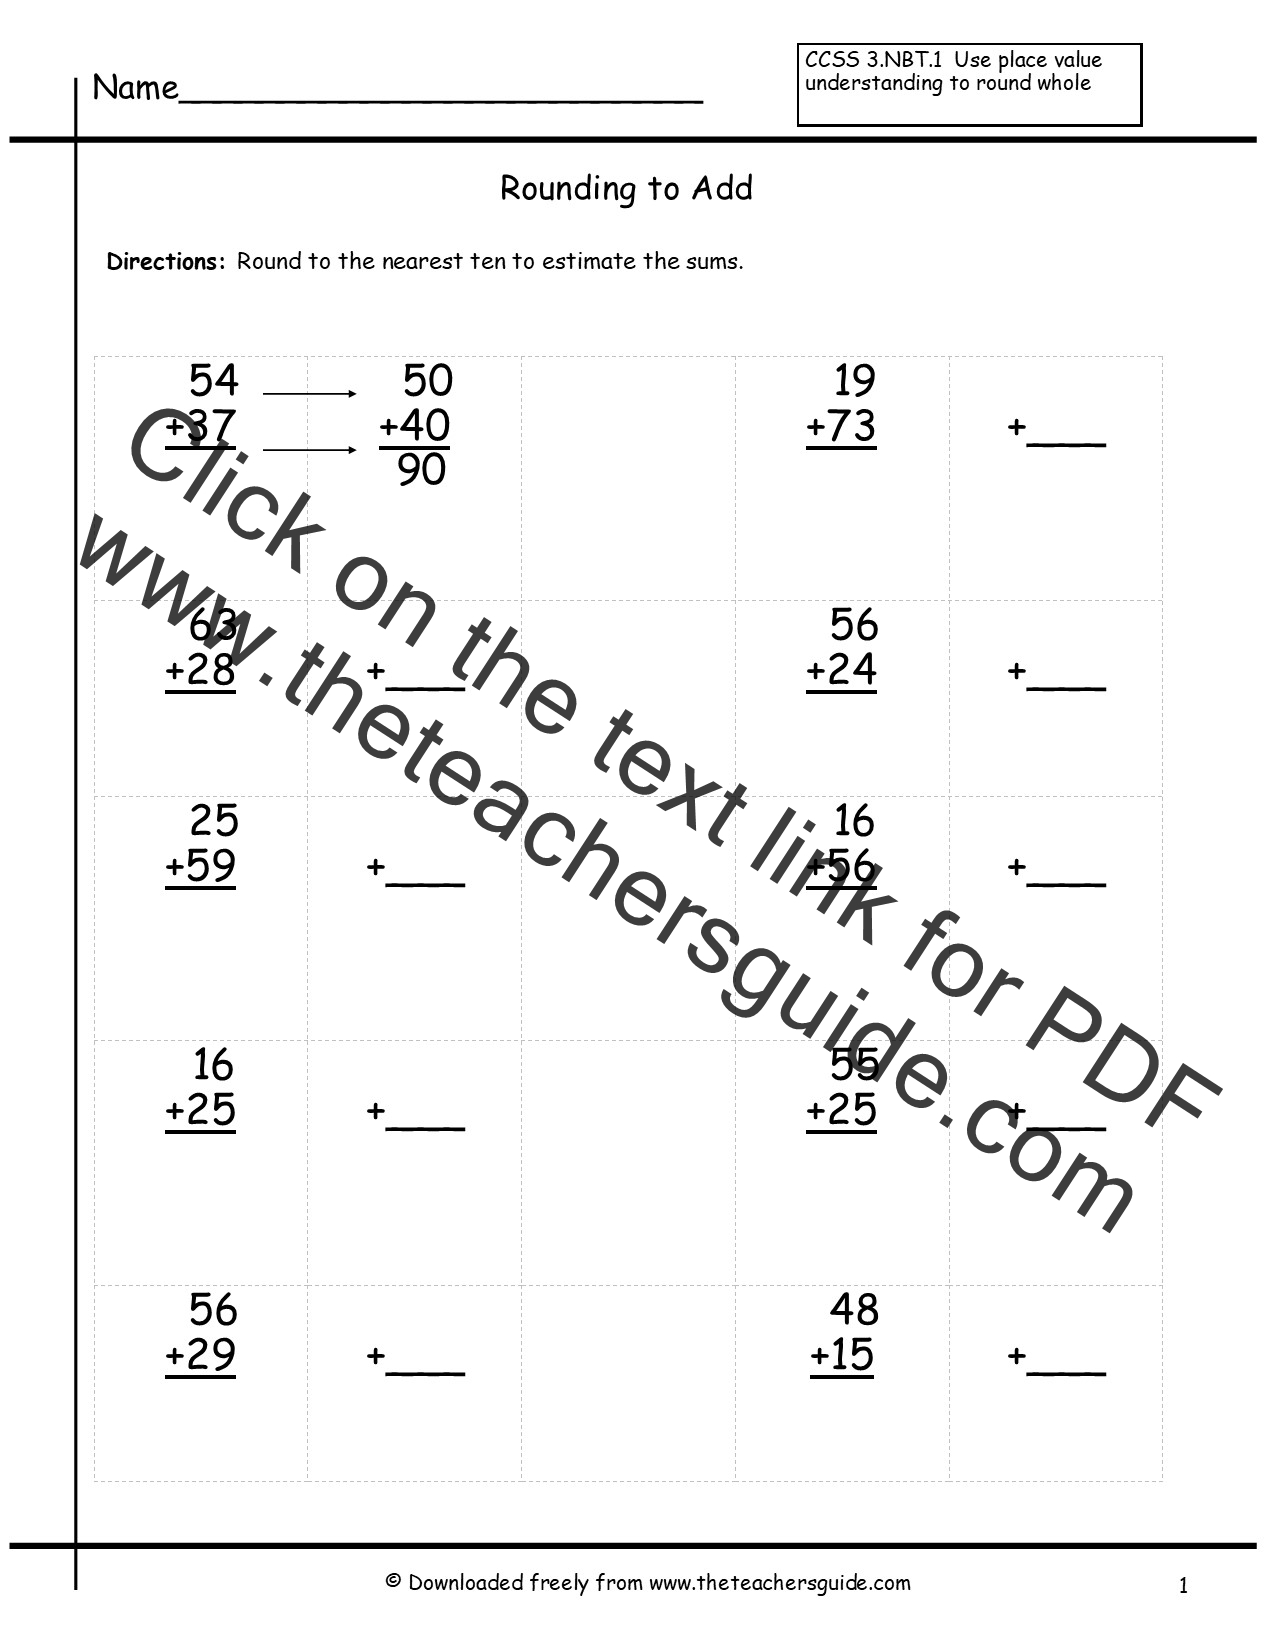 Rounding Whole Numbers Worksheets From The Teacher S Guide